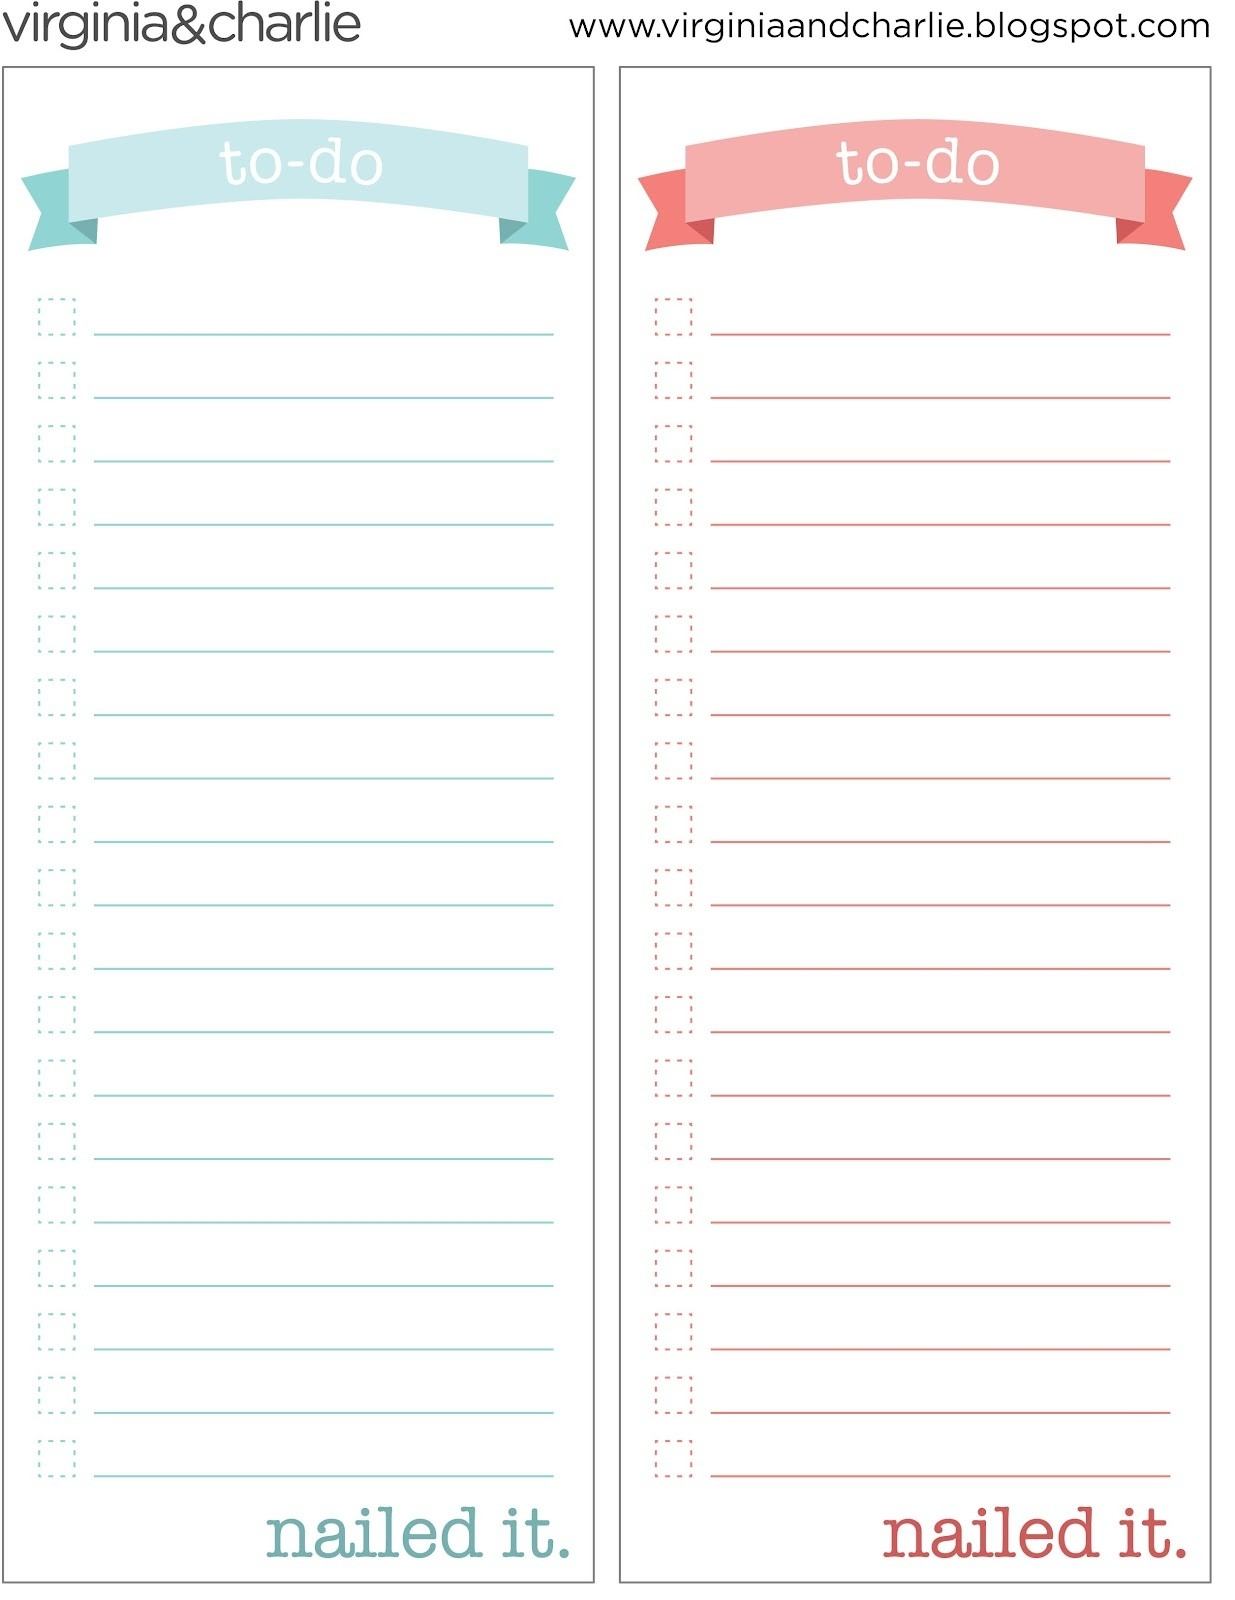 Things To Do Template Pdf | Virginia And Charlie: Printable To-Do intended for Free Printable To Do List Pdf 25463